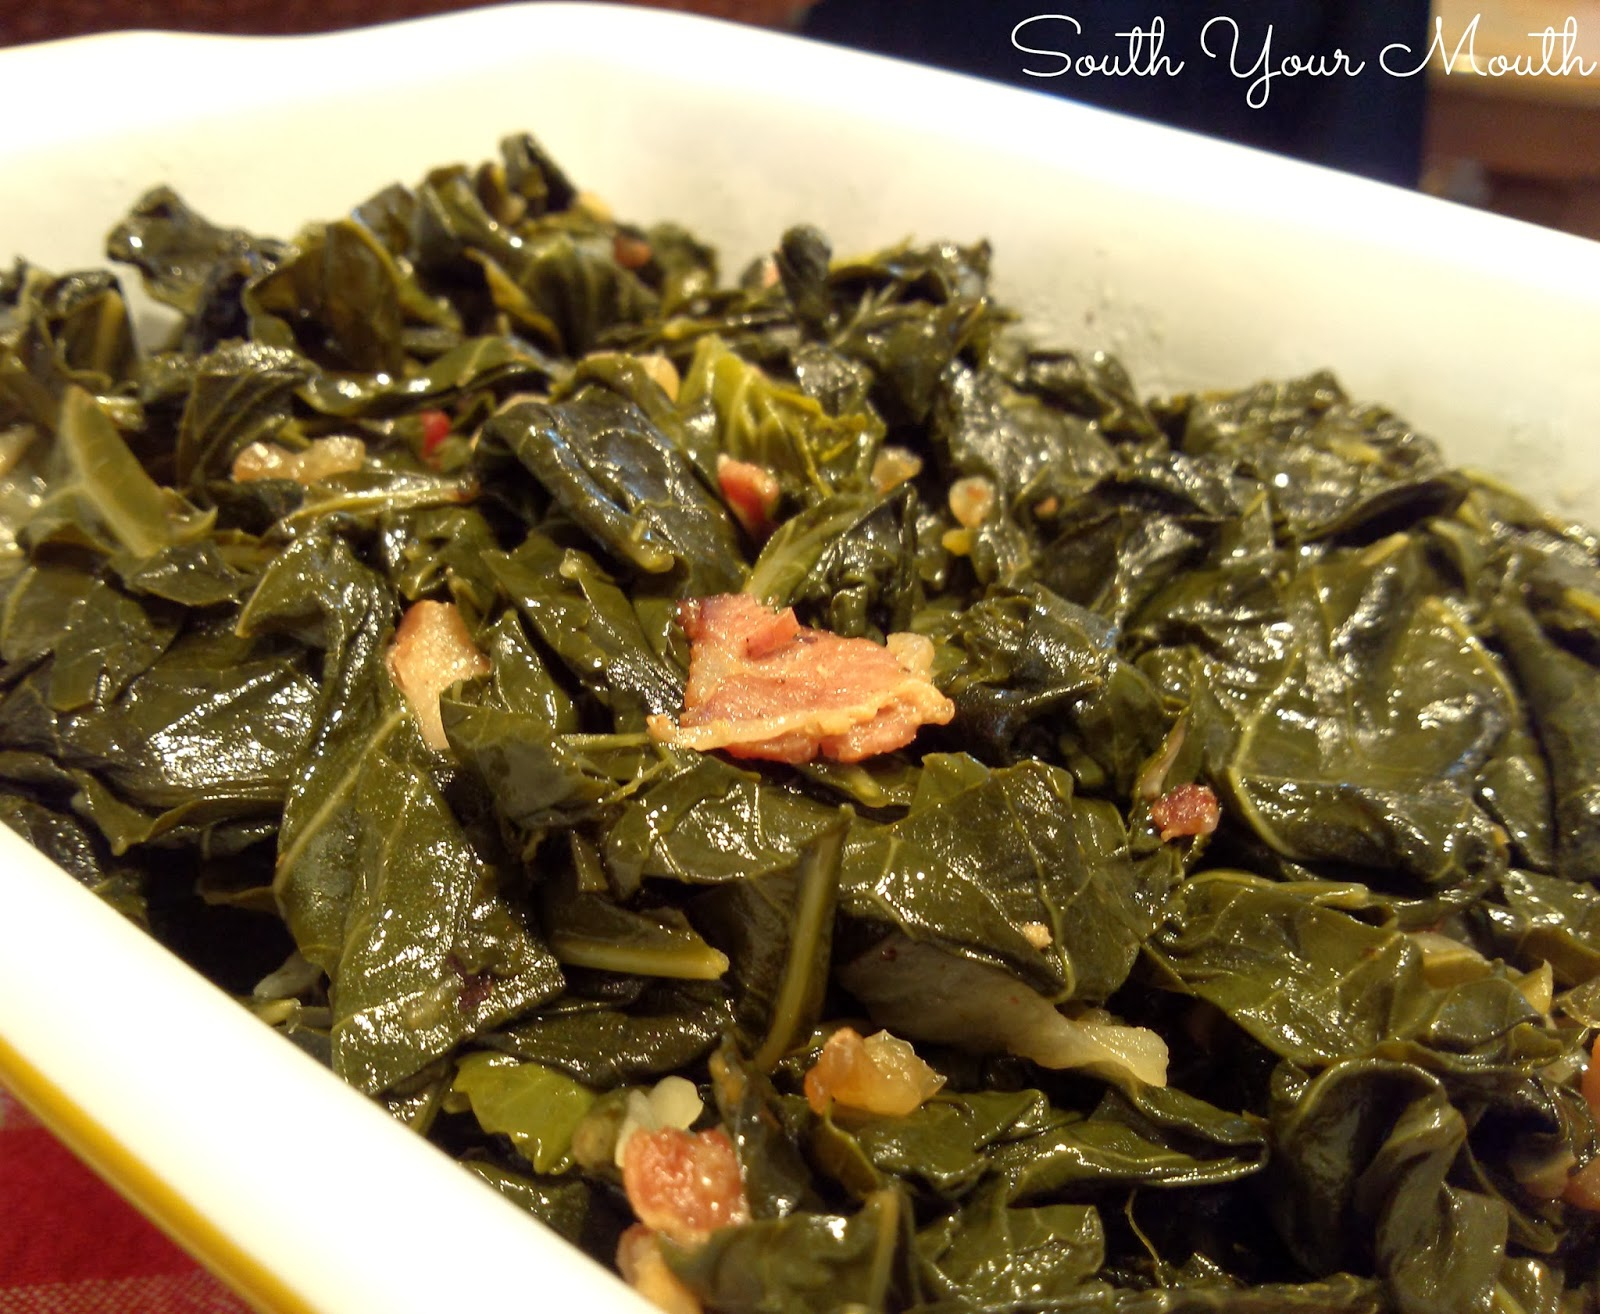 South your mouth southern style collard greens and cooking greens is no exception we all do it differently ive seen more than one southern food expert on television cook them in ways that made me forumfinder Gallery